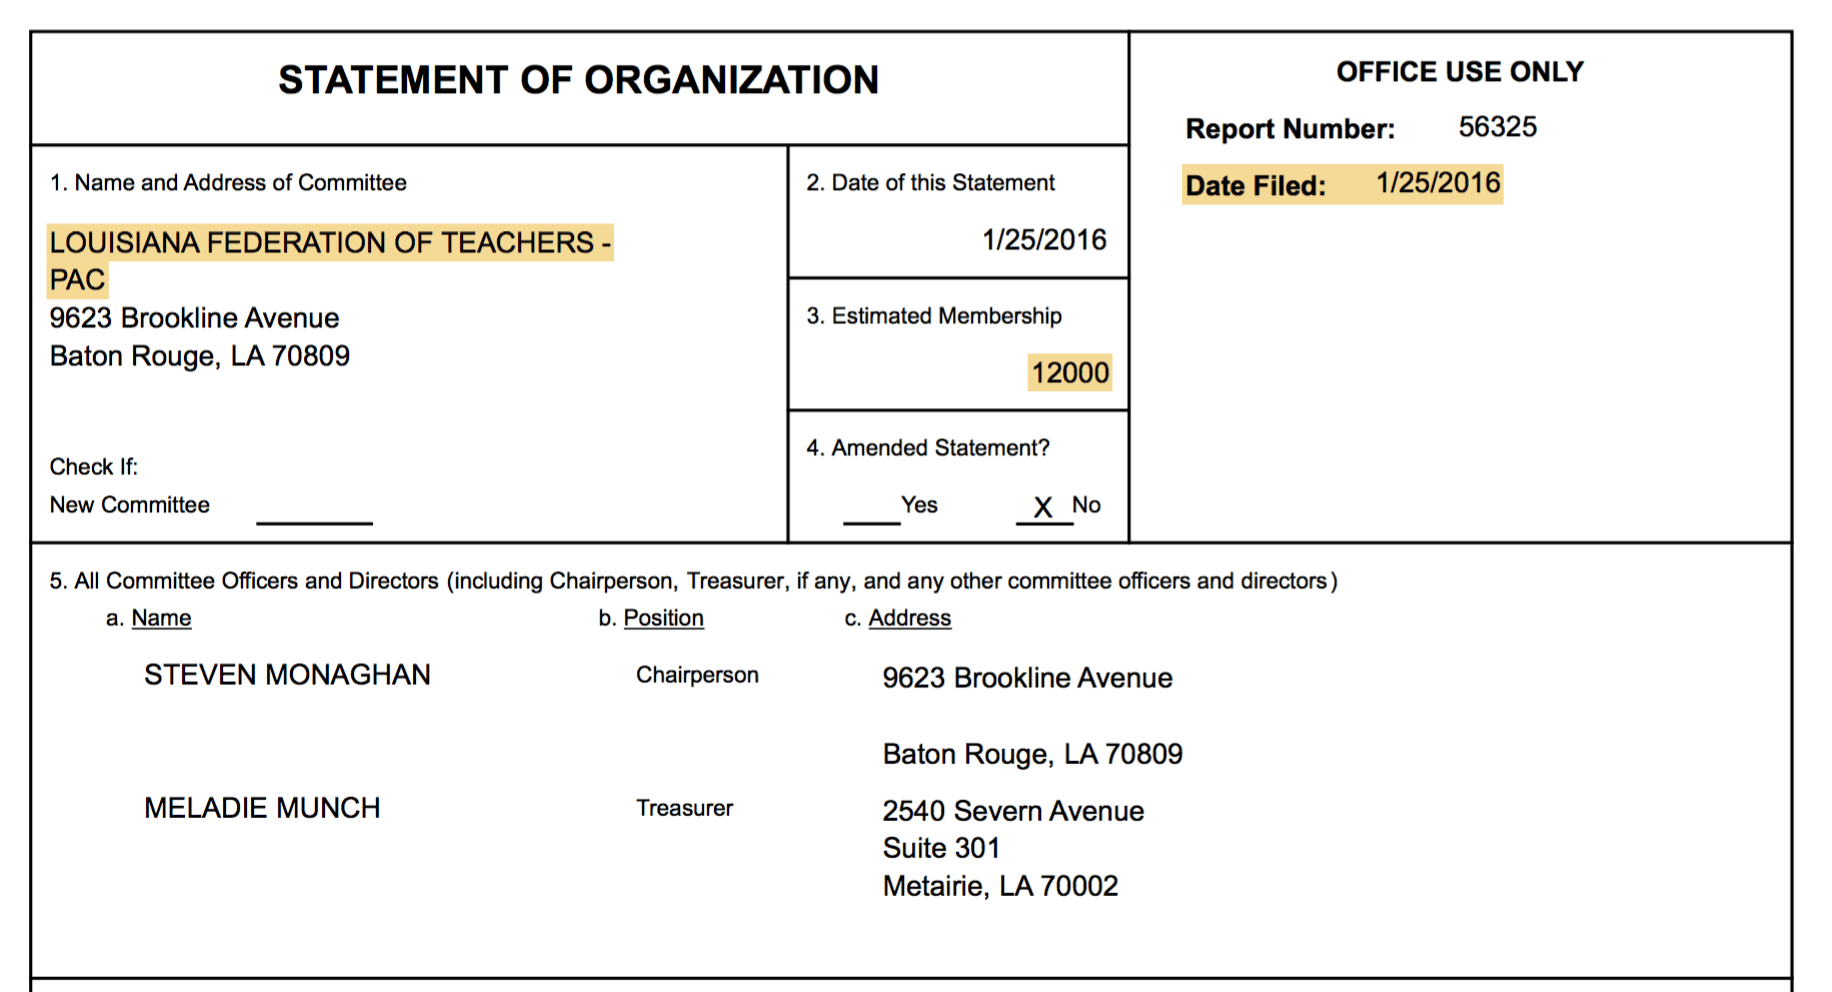 In February, LFT told the Louisiana Board of Ethics they only had 12,000 members.